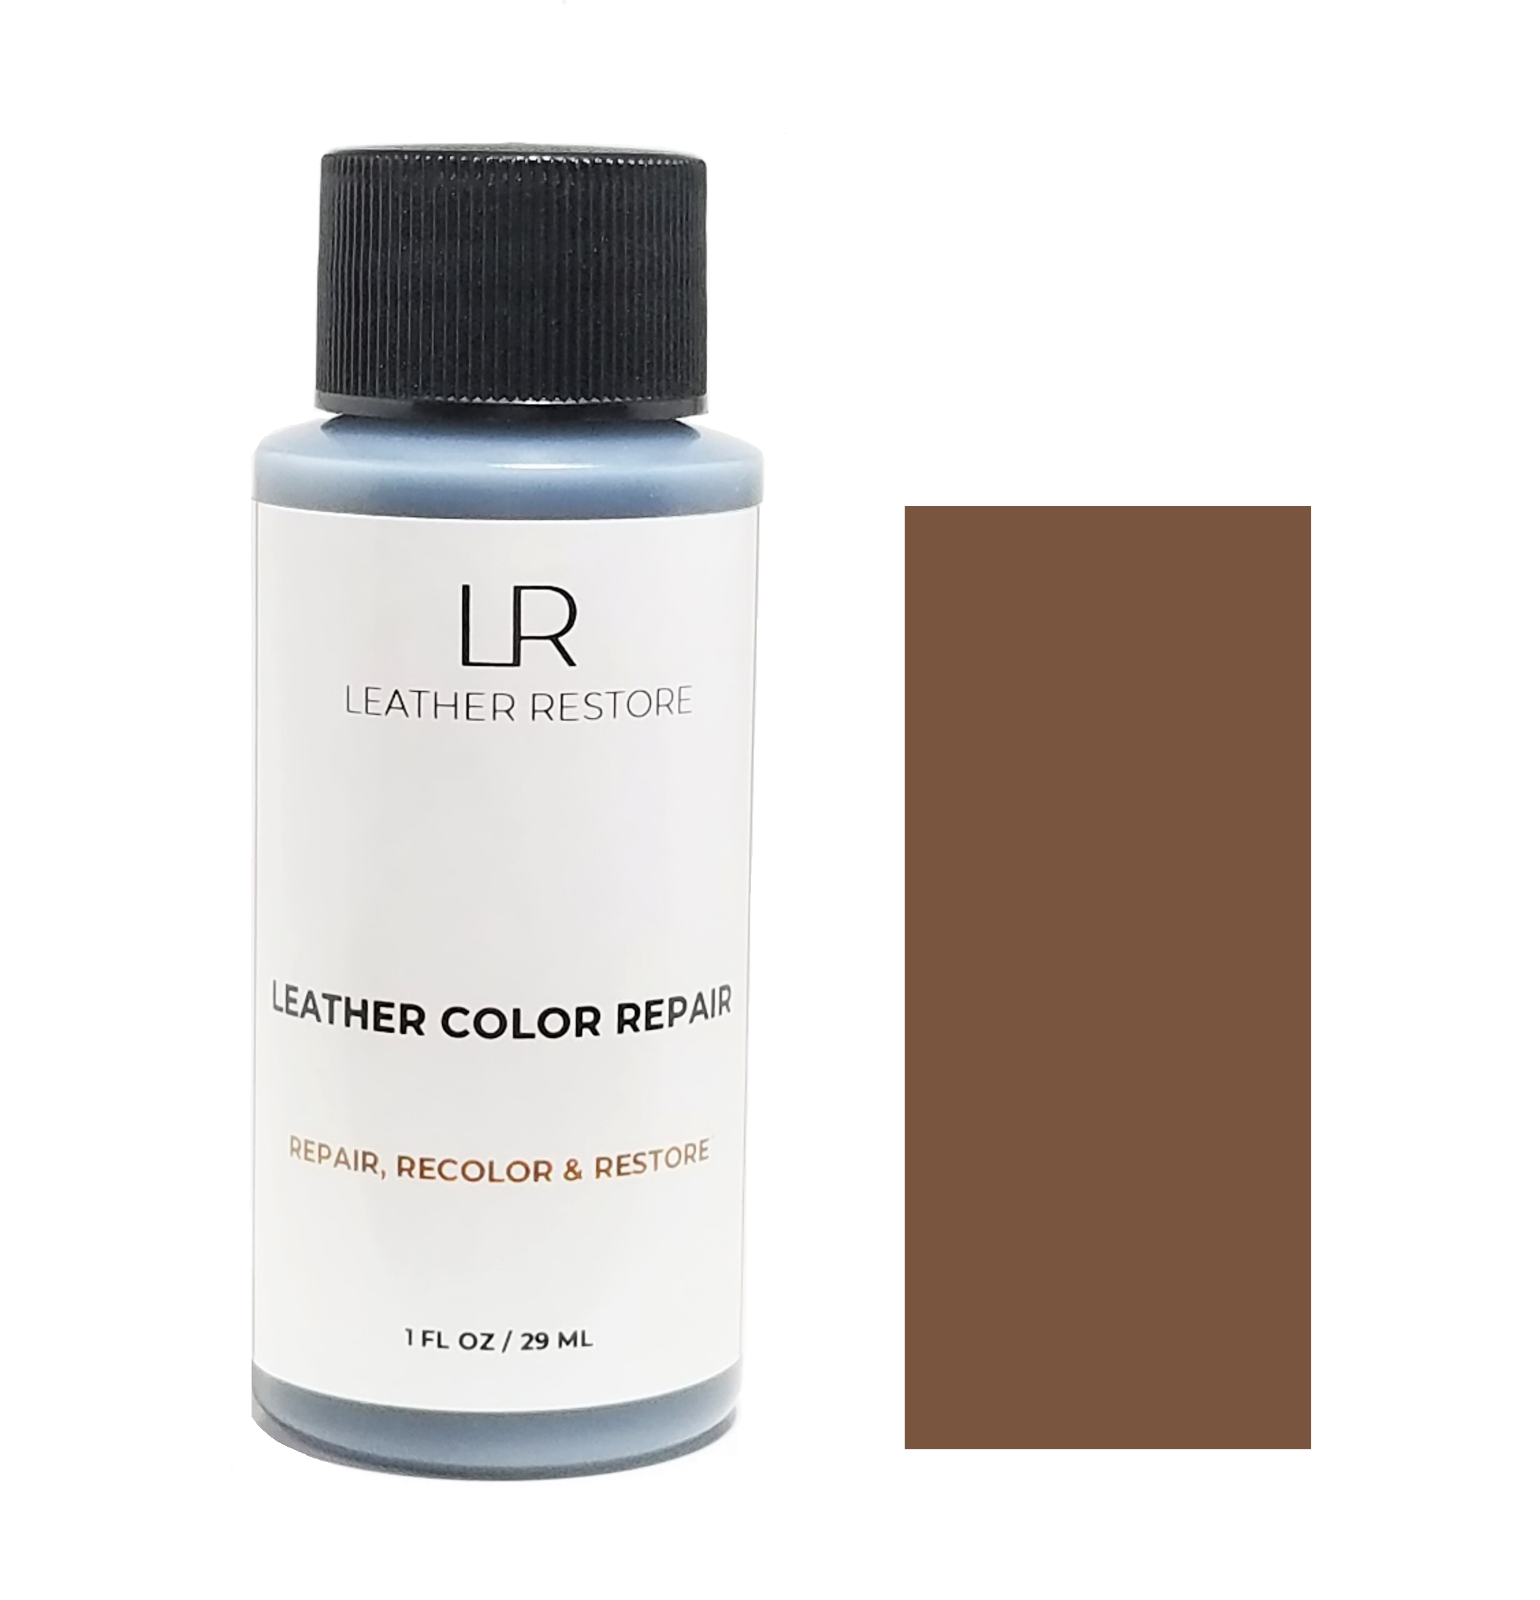 Outstanding Leather Color Repair 1 Oz Recolor Restorer Couch Furniture Alphanode Cool Chair Designs And Ideas Alphanodeonline